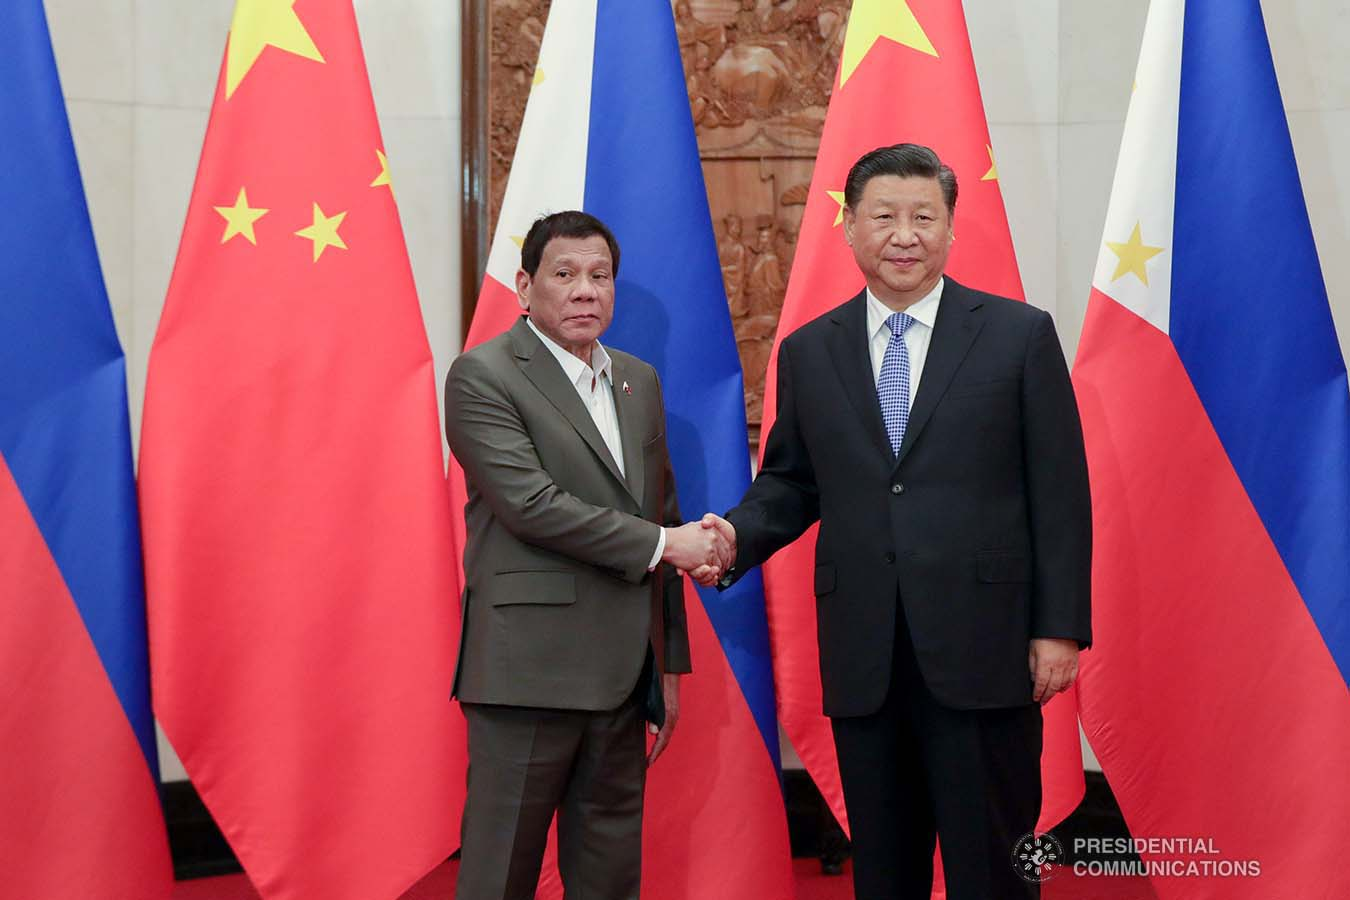 Beijing to Duterte: South China Sea position not up for talks